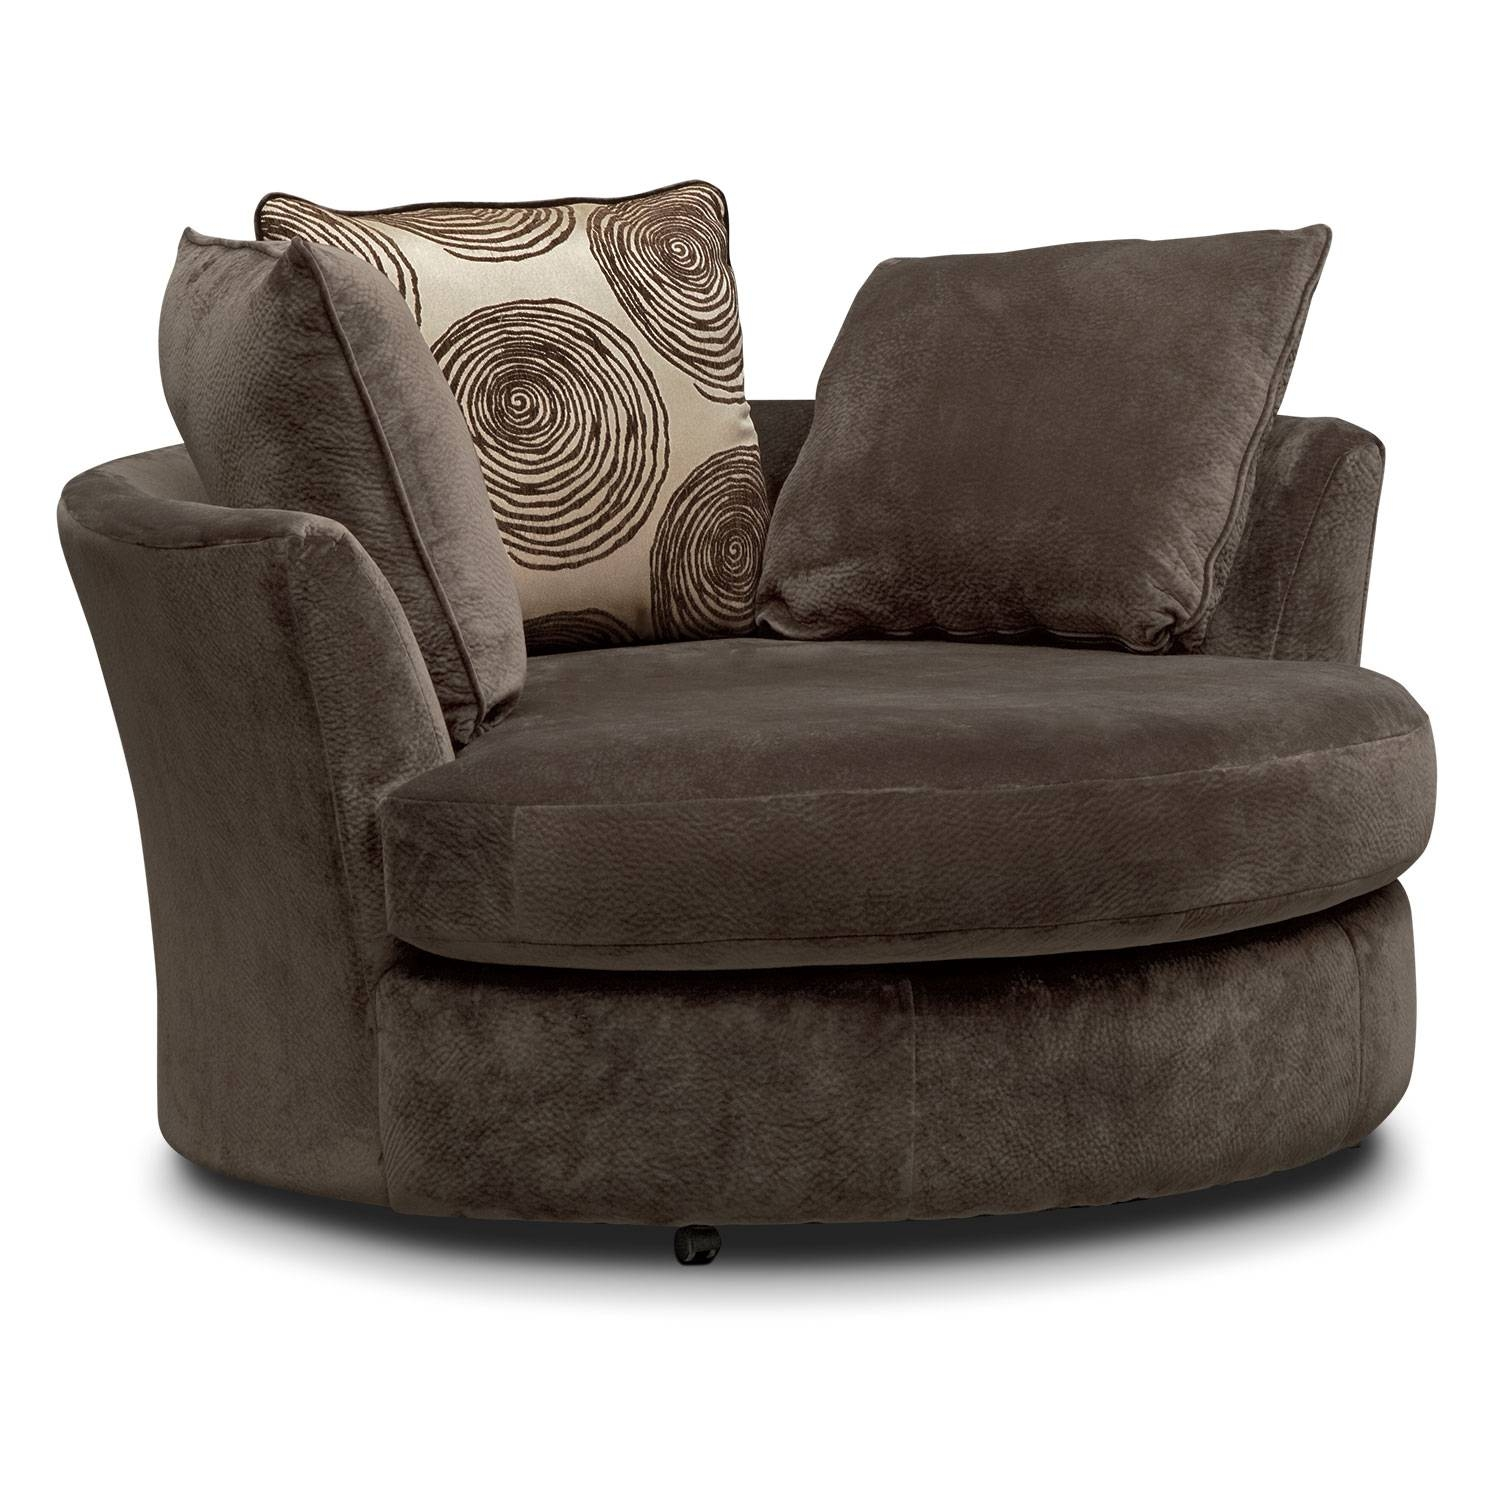 Cordelle Swivel Chair - Chocolate | Value City Furniture intended for Round Sofa Chair Living Room Furniture (Image 4 of 30)